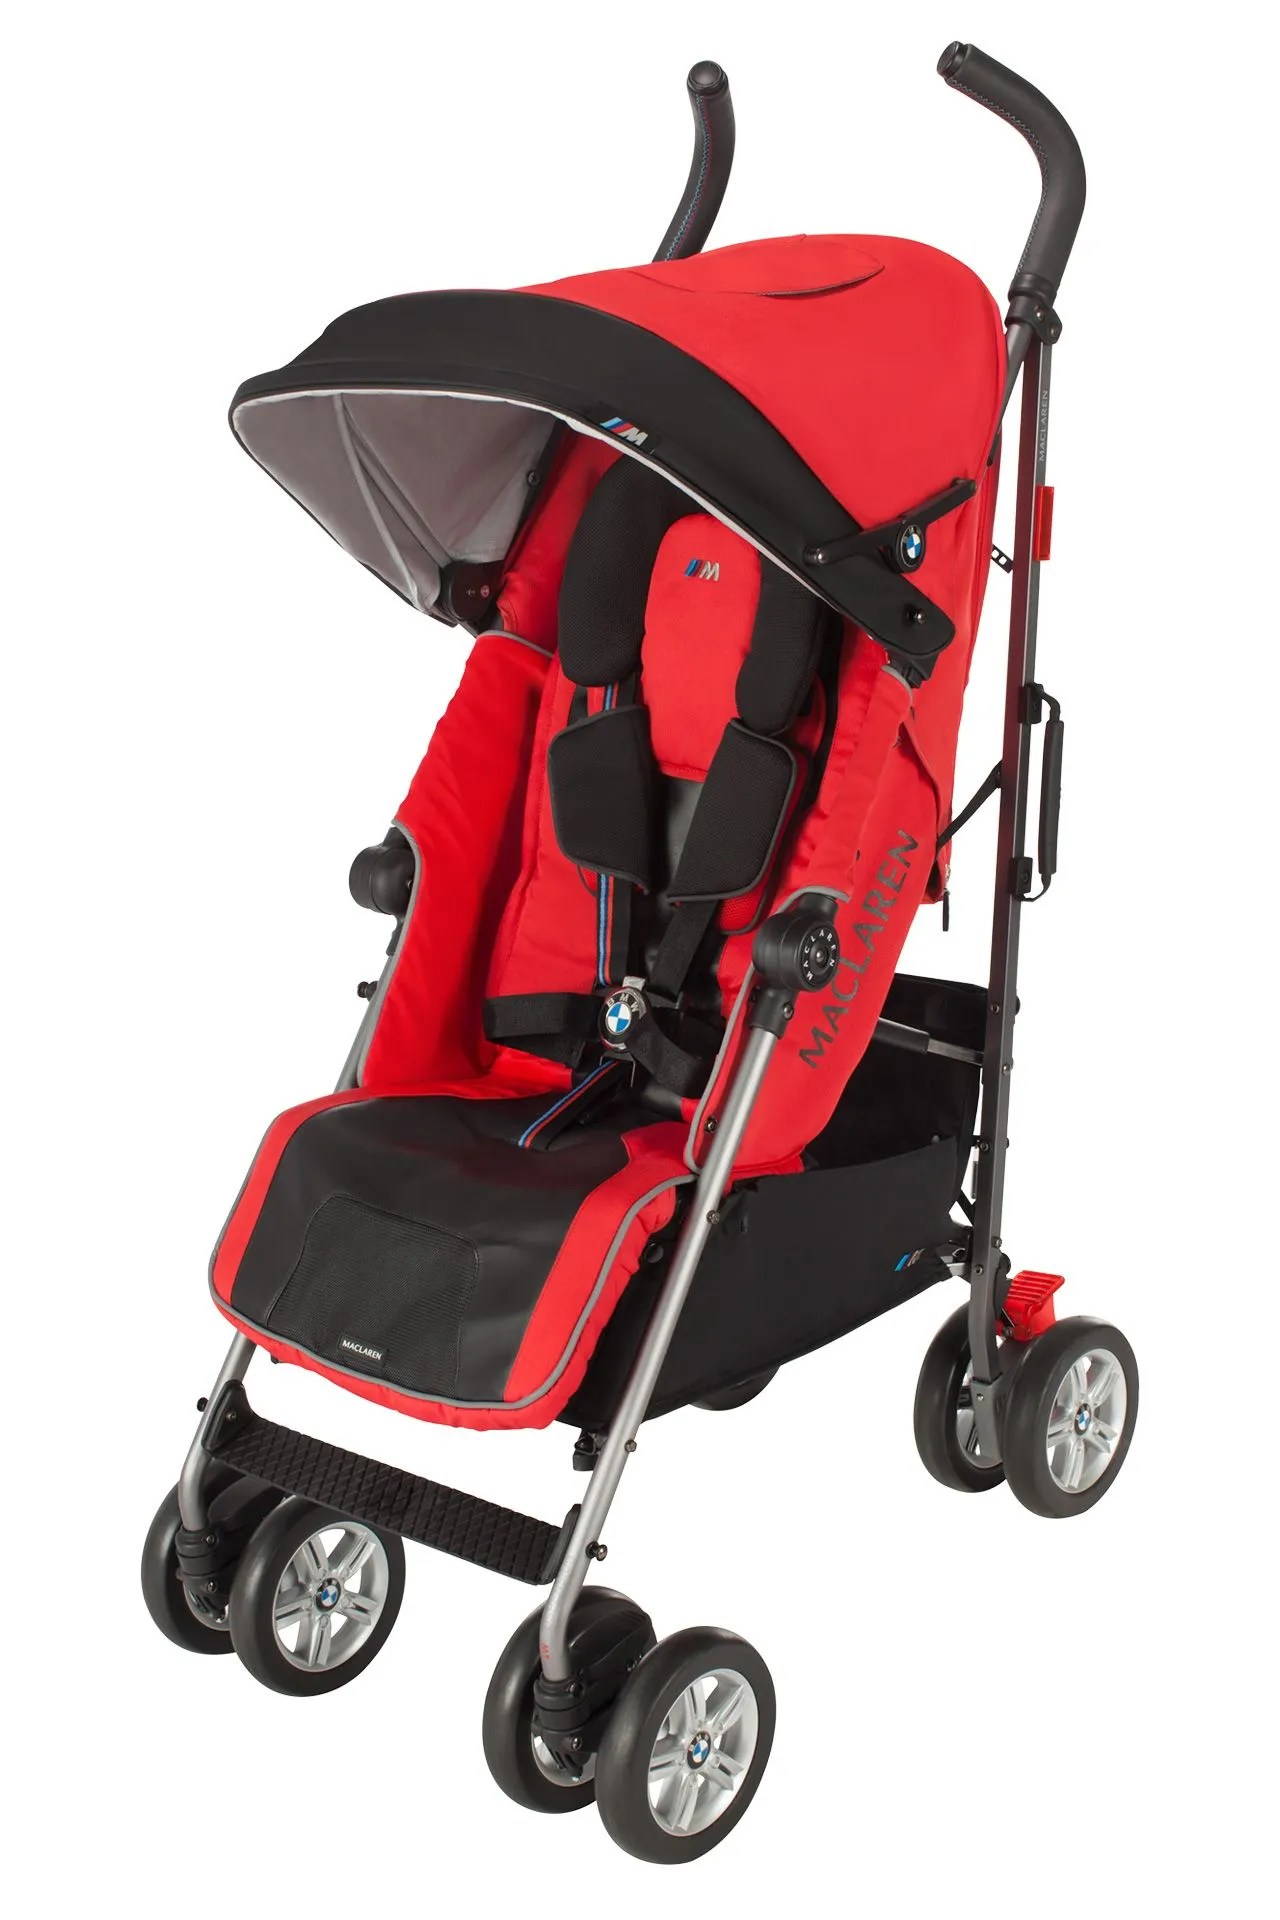 Maclaren Stroller Uk Reviews Bugaboo Bee3 And Baby Jogger Buggys Tested In The Gq